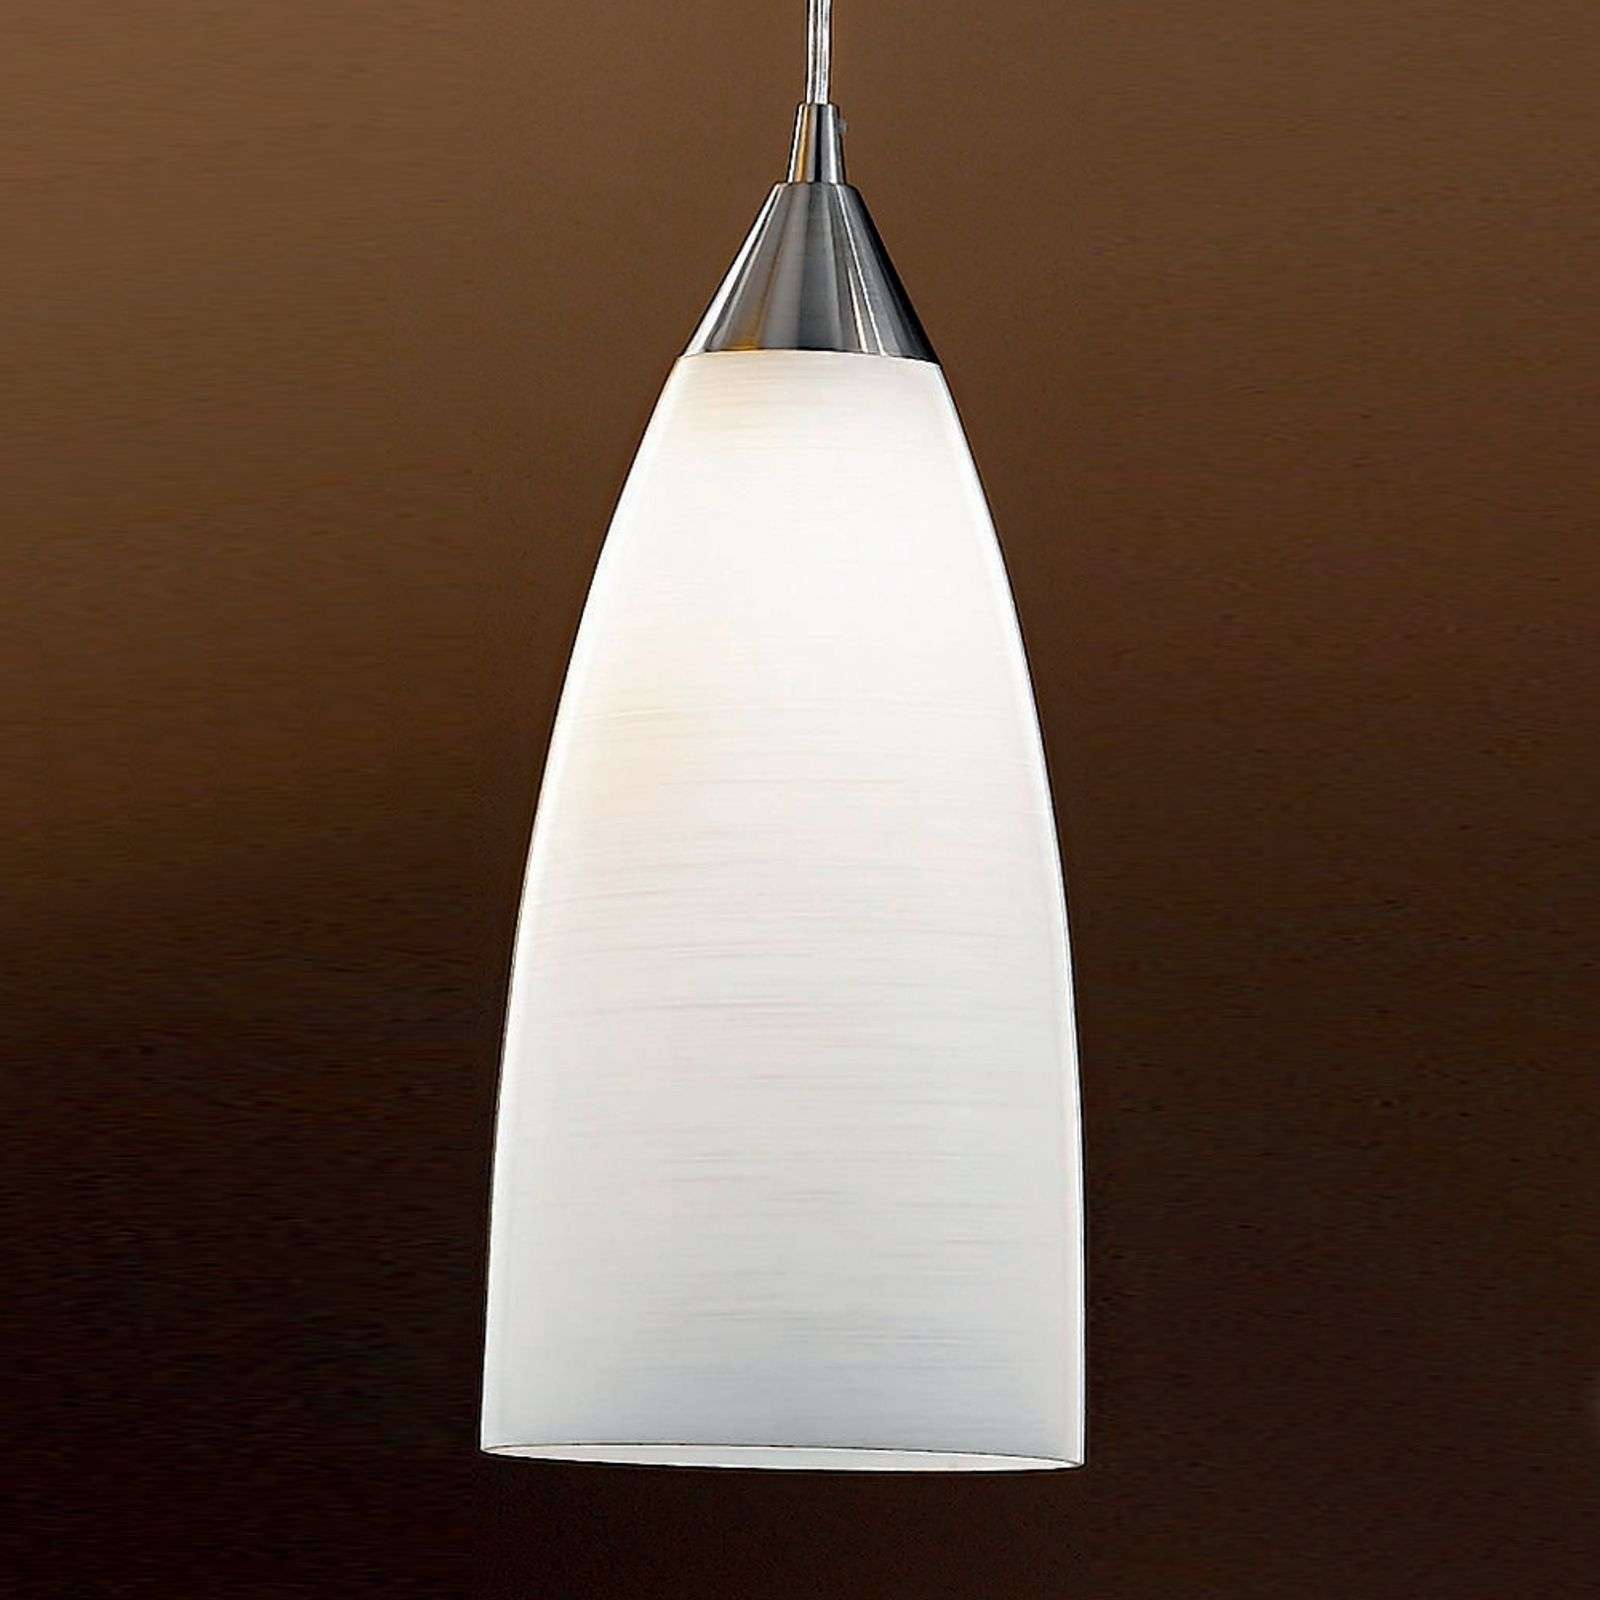 Suspension en verre estompé MADINA, D 15 cm blanc